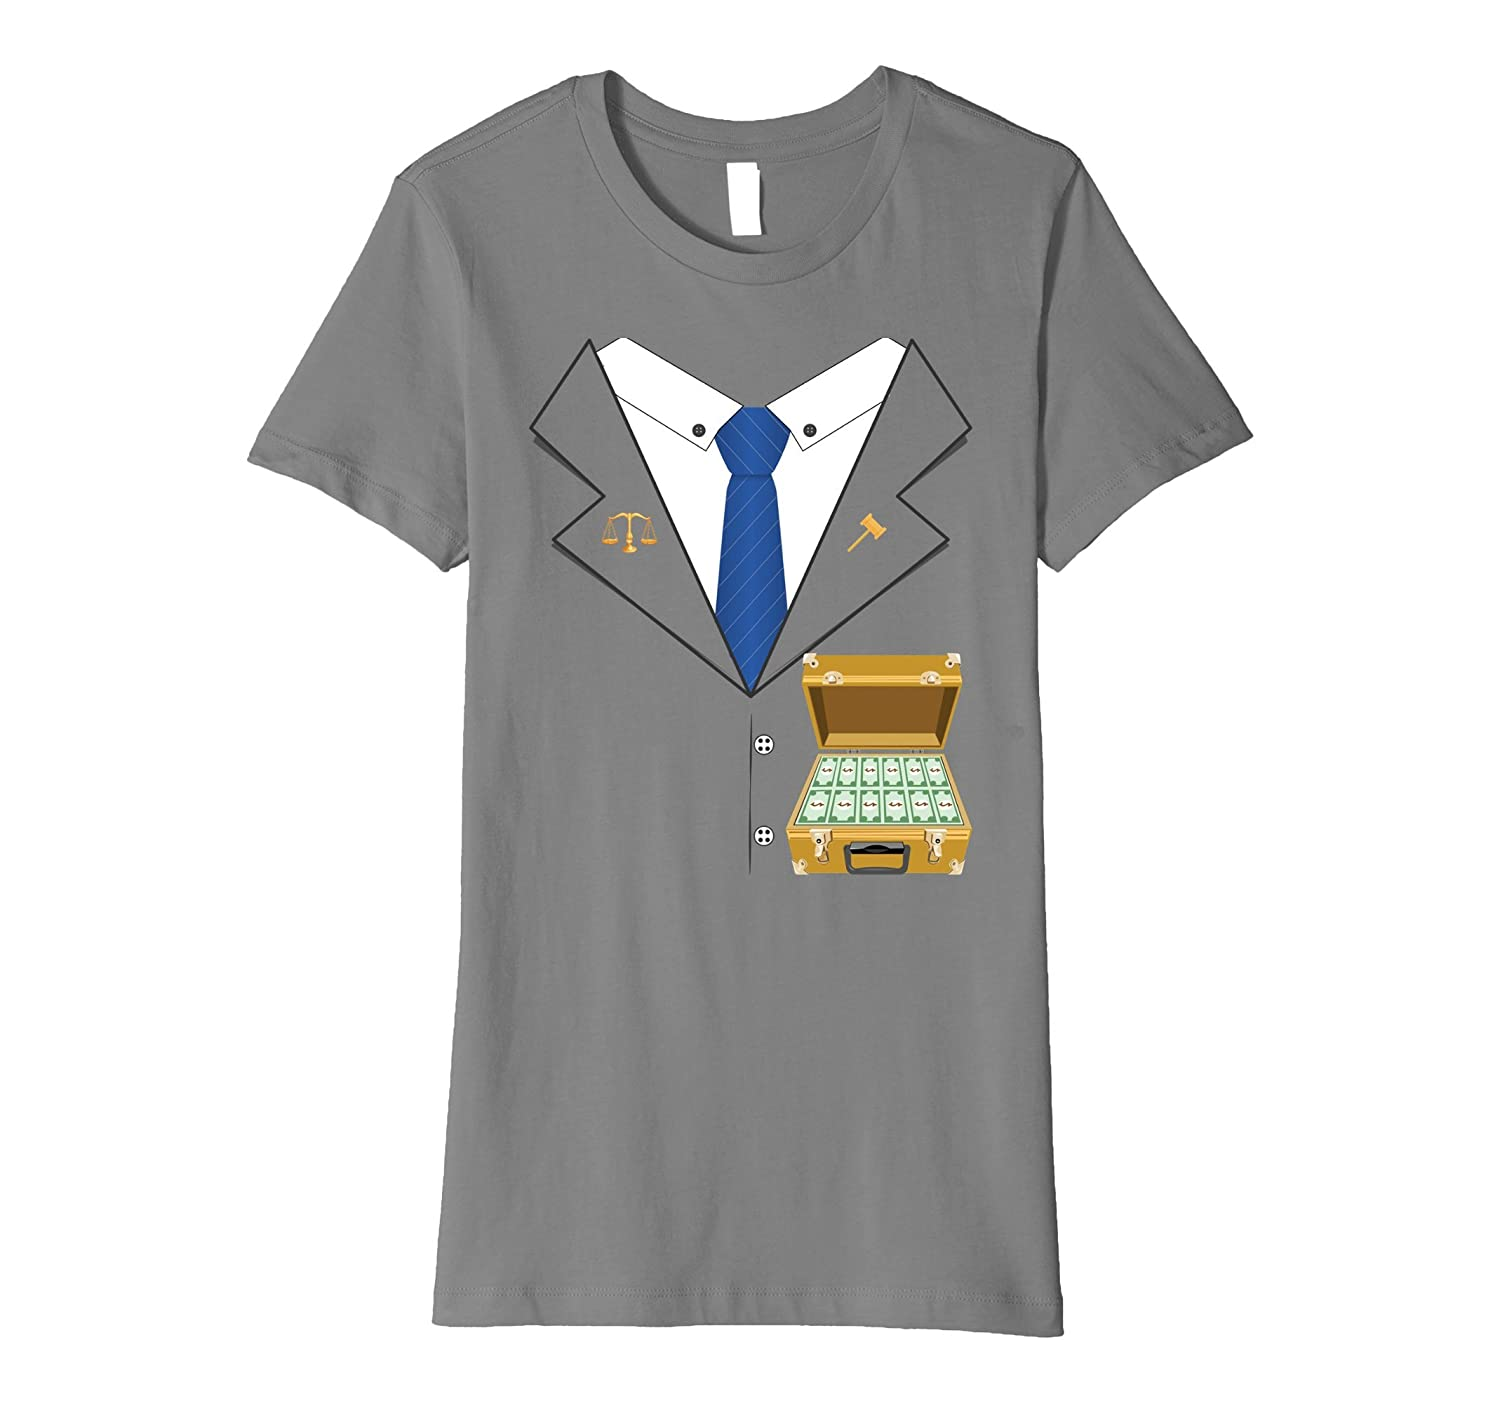 Lawyer Halloween Costume Premium T-shirt - Money Briefcase